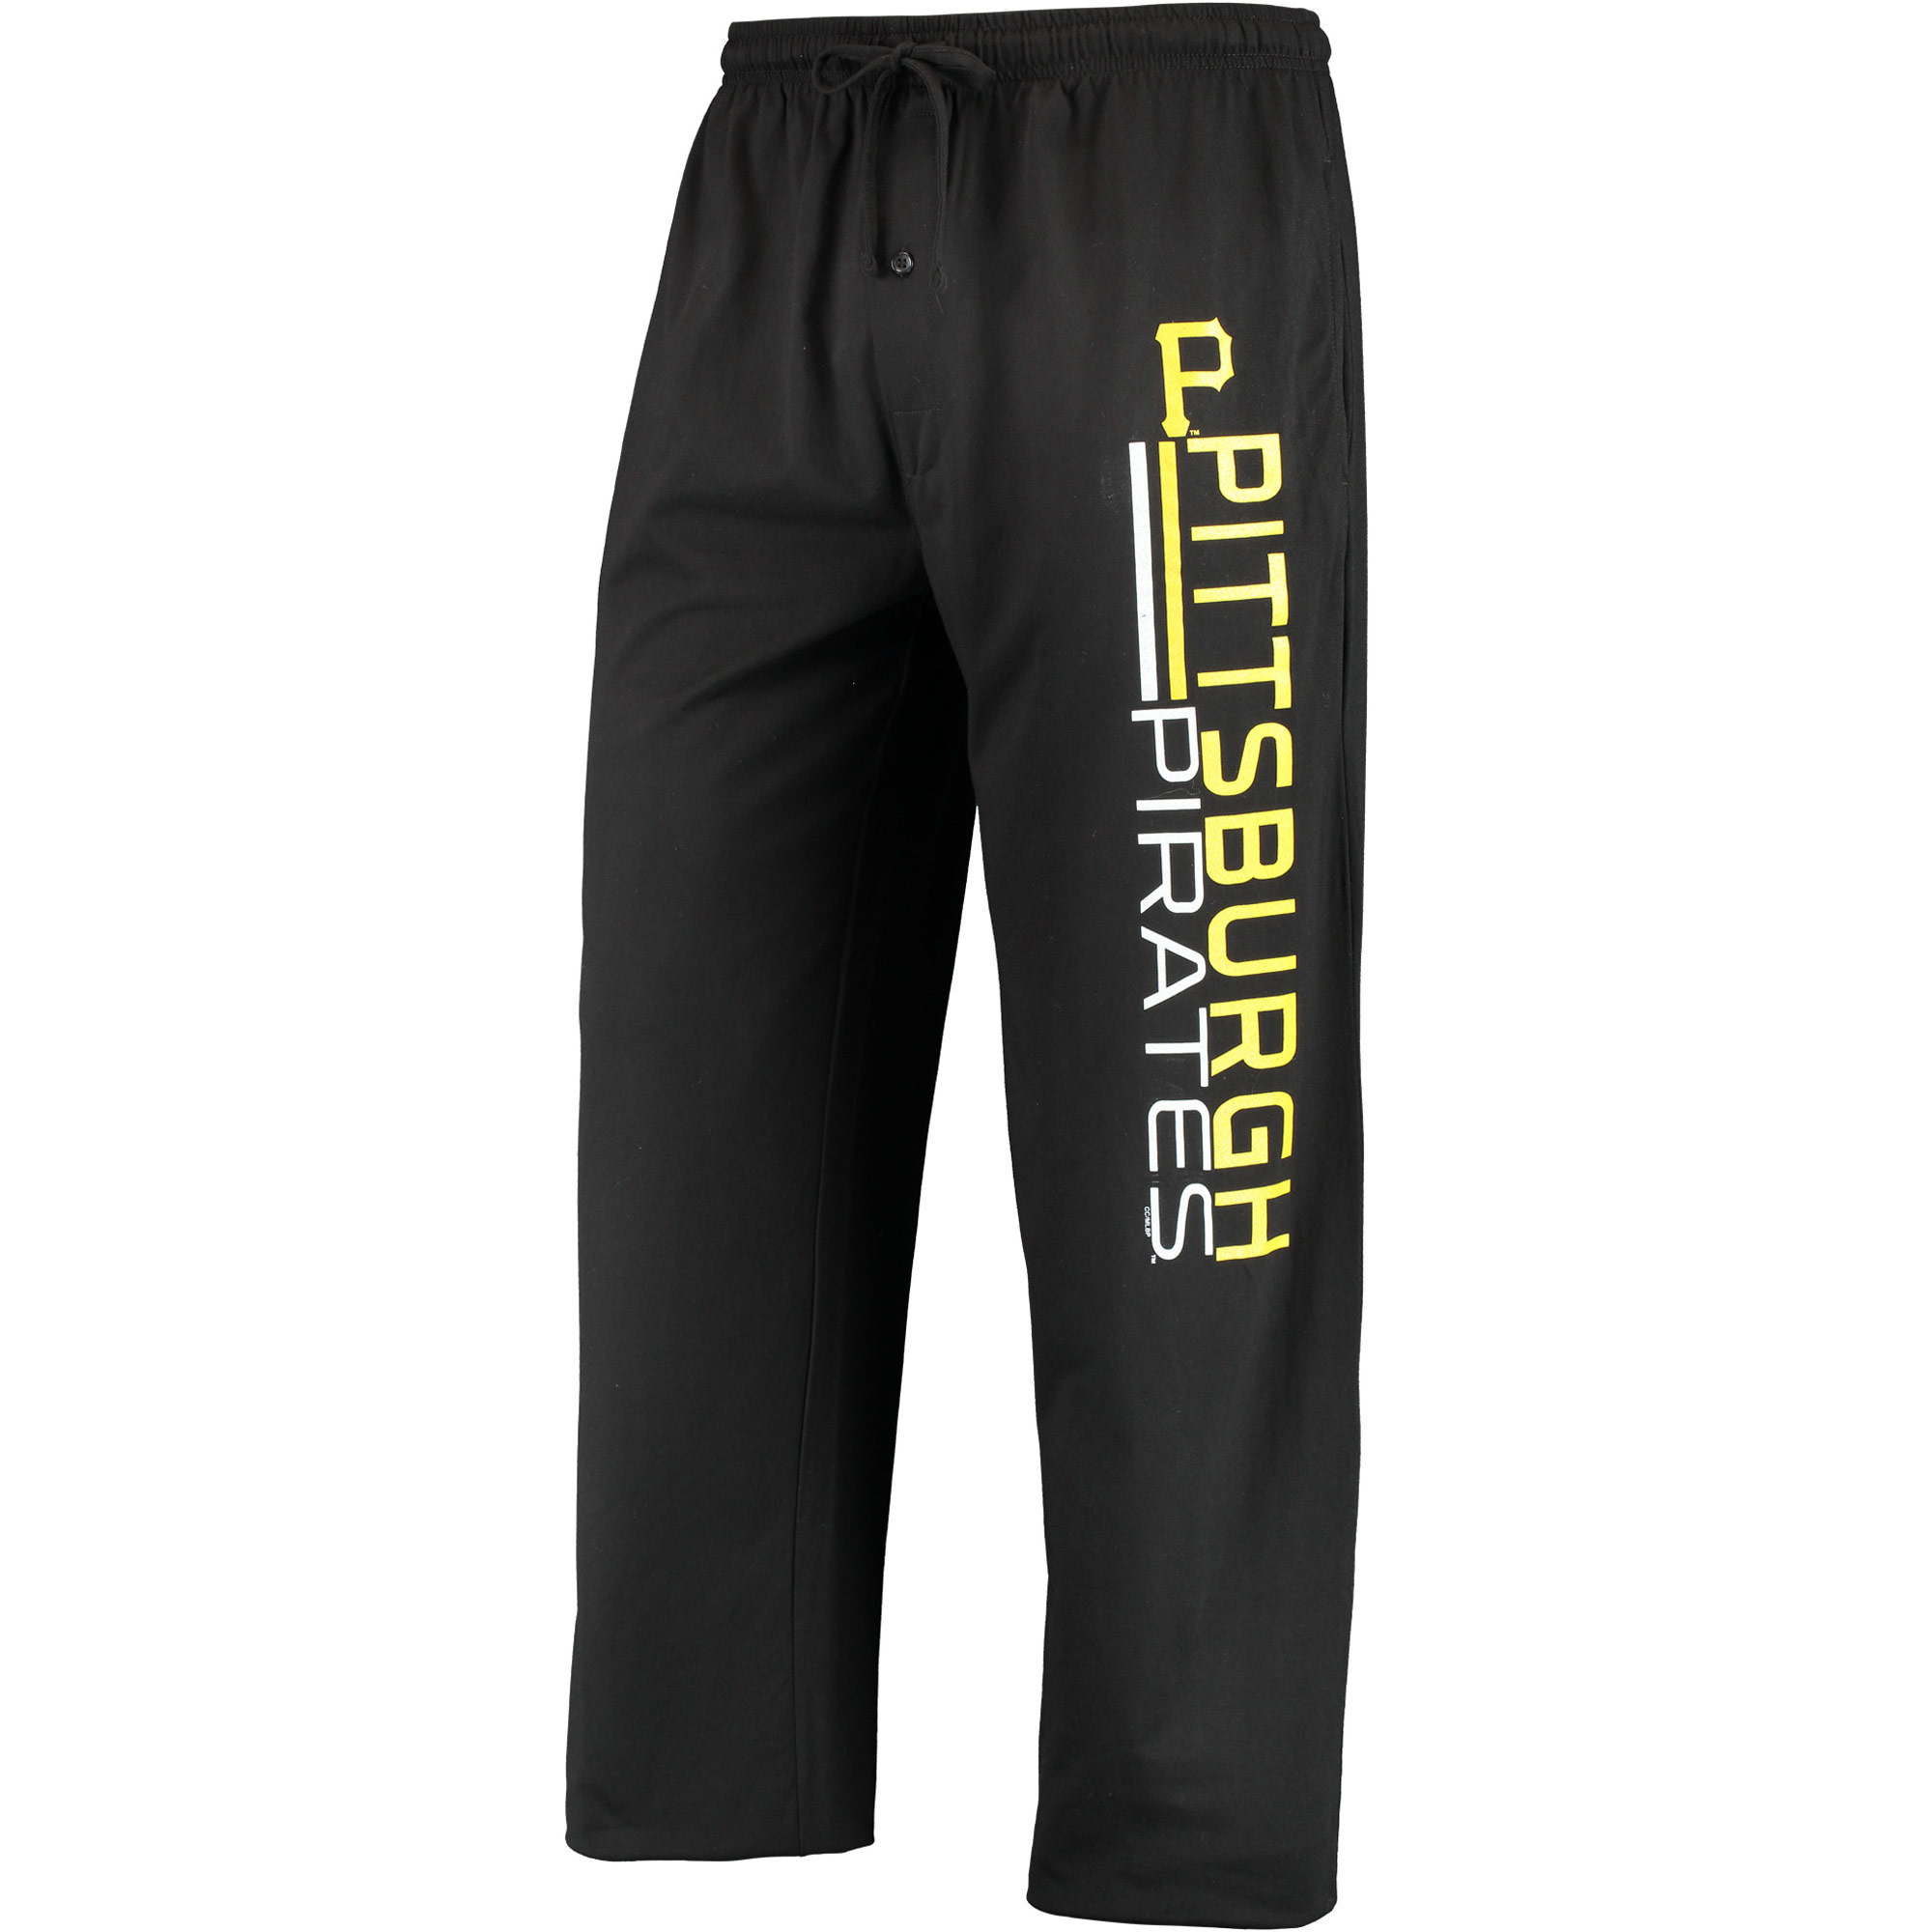 Pittsburgh Pirates Concepts Sport NBO Knit Pants - Black